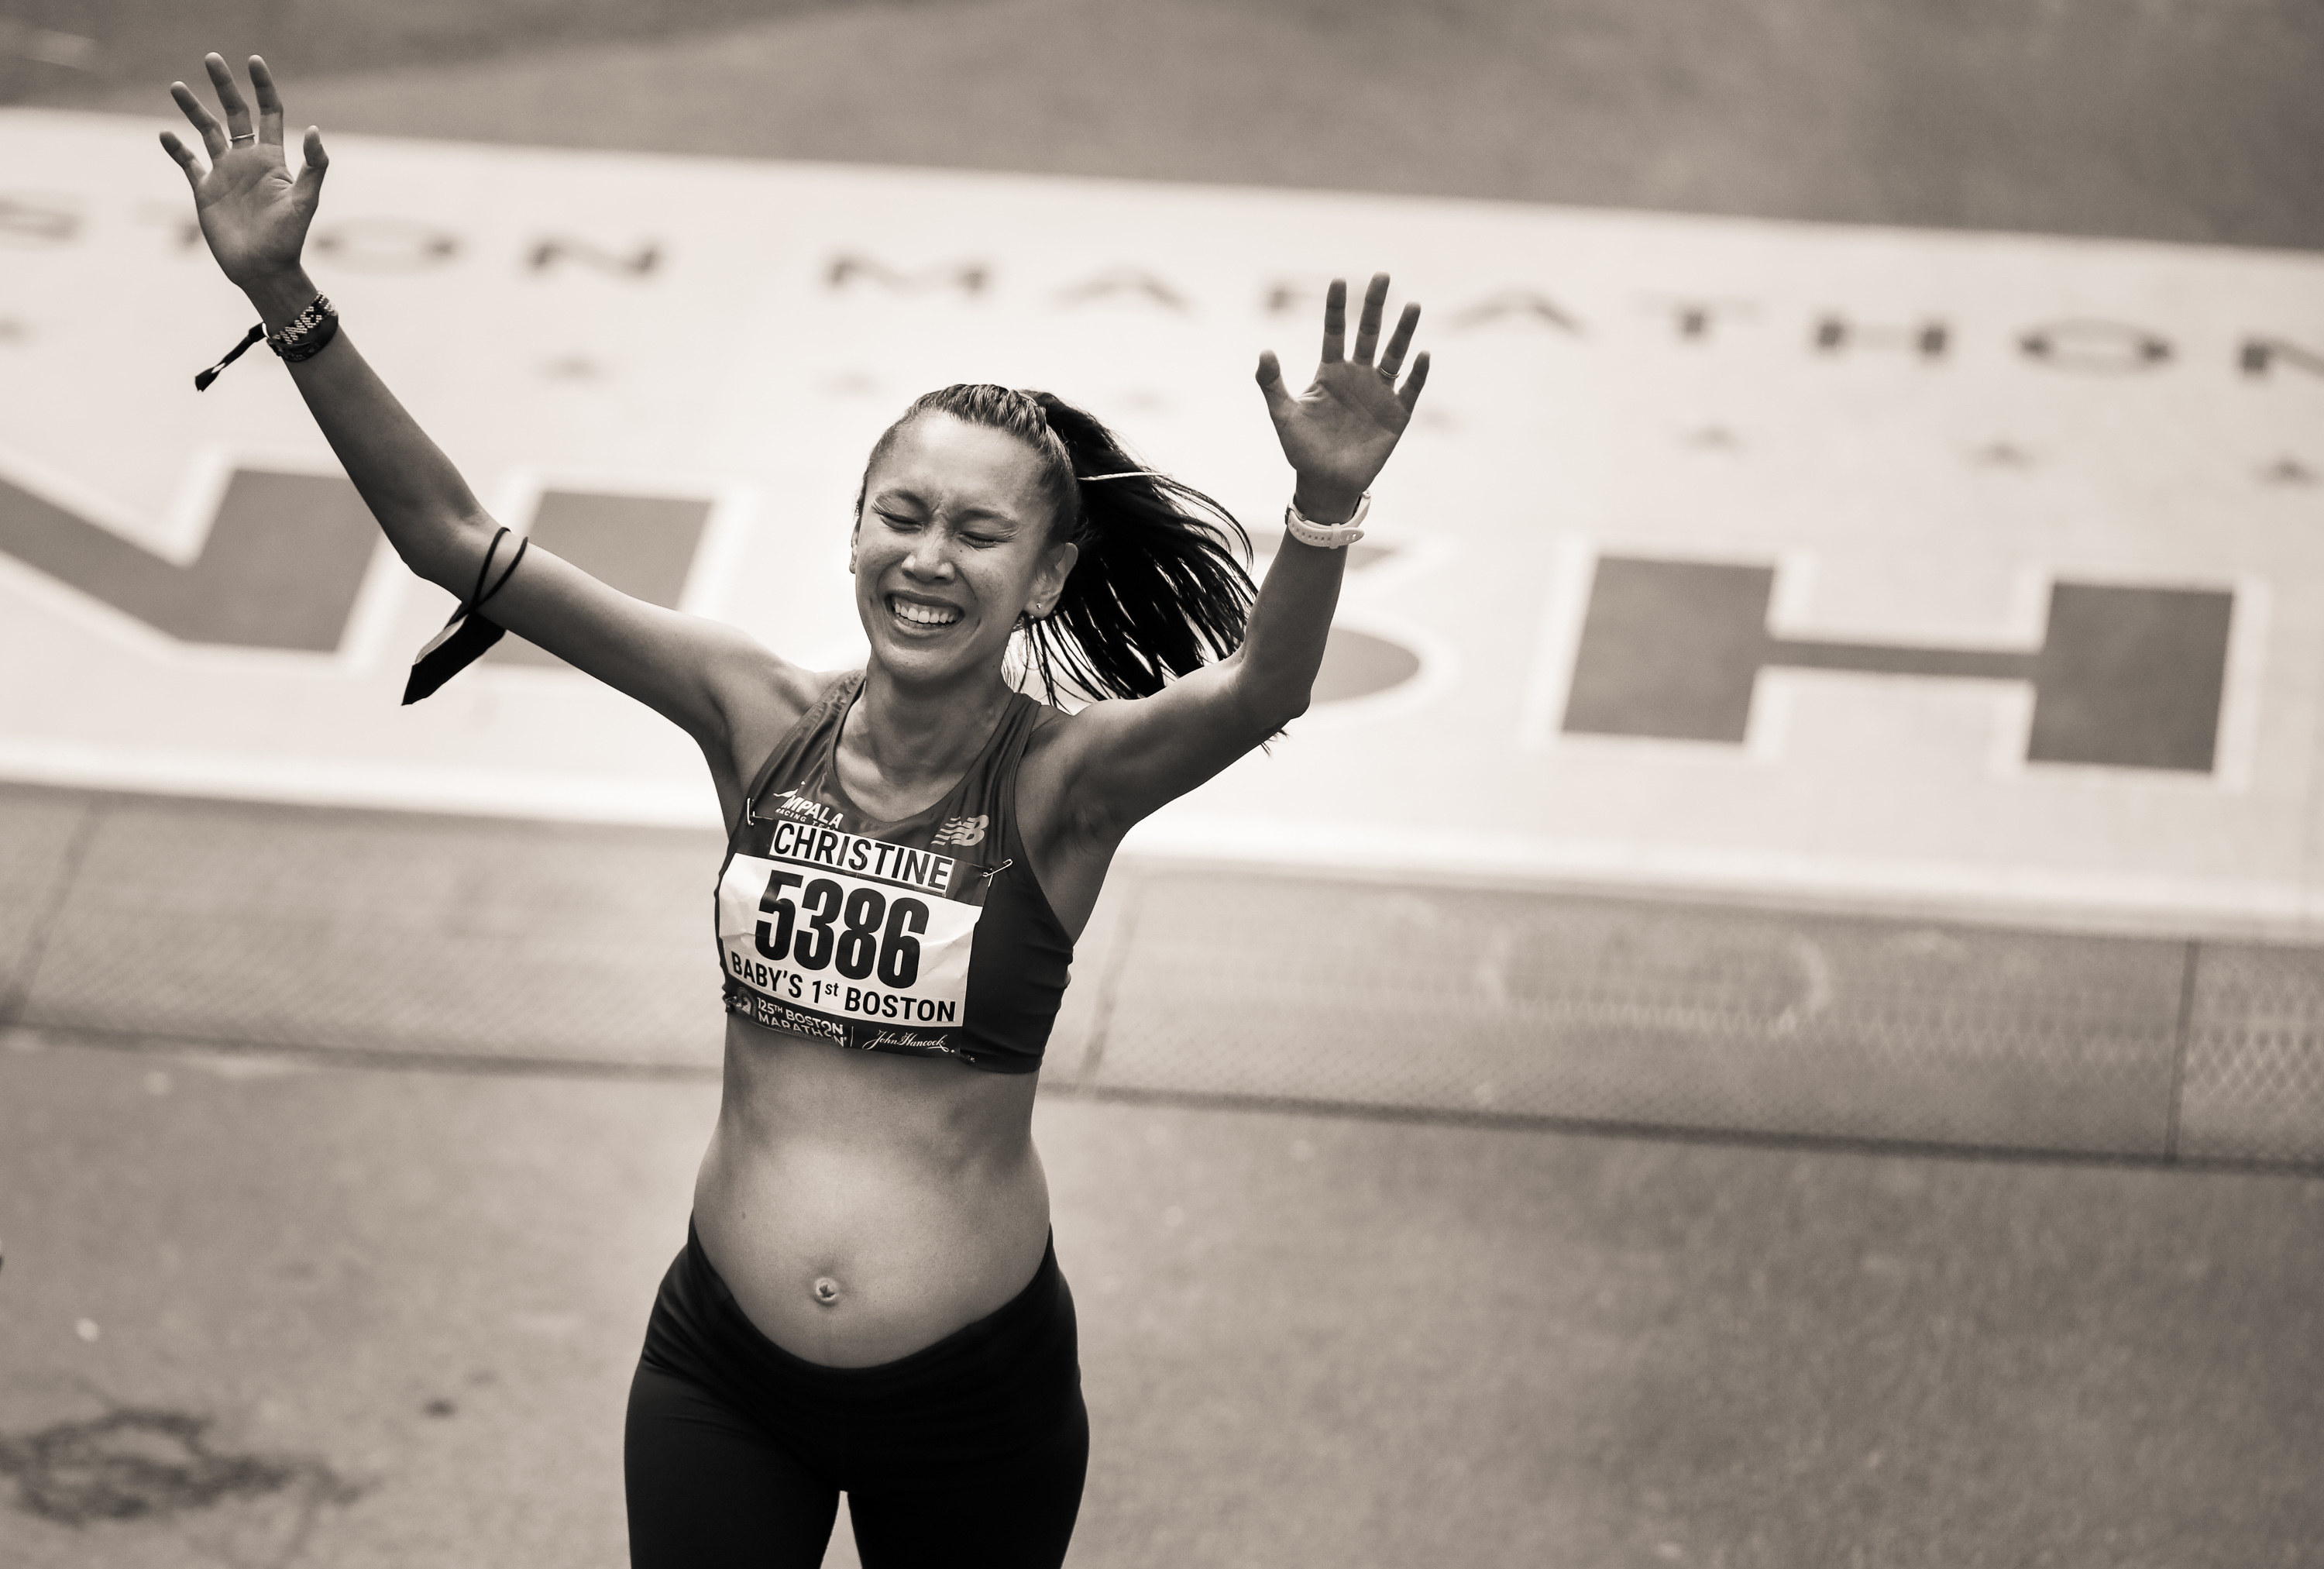 A visibly pregnant woman crosses the finish line with her arms raised.